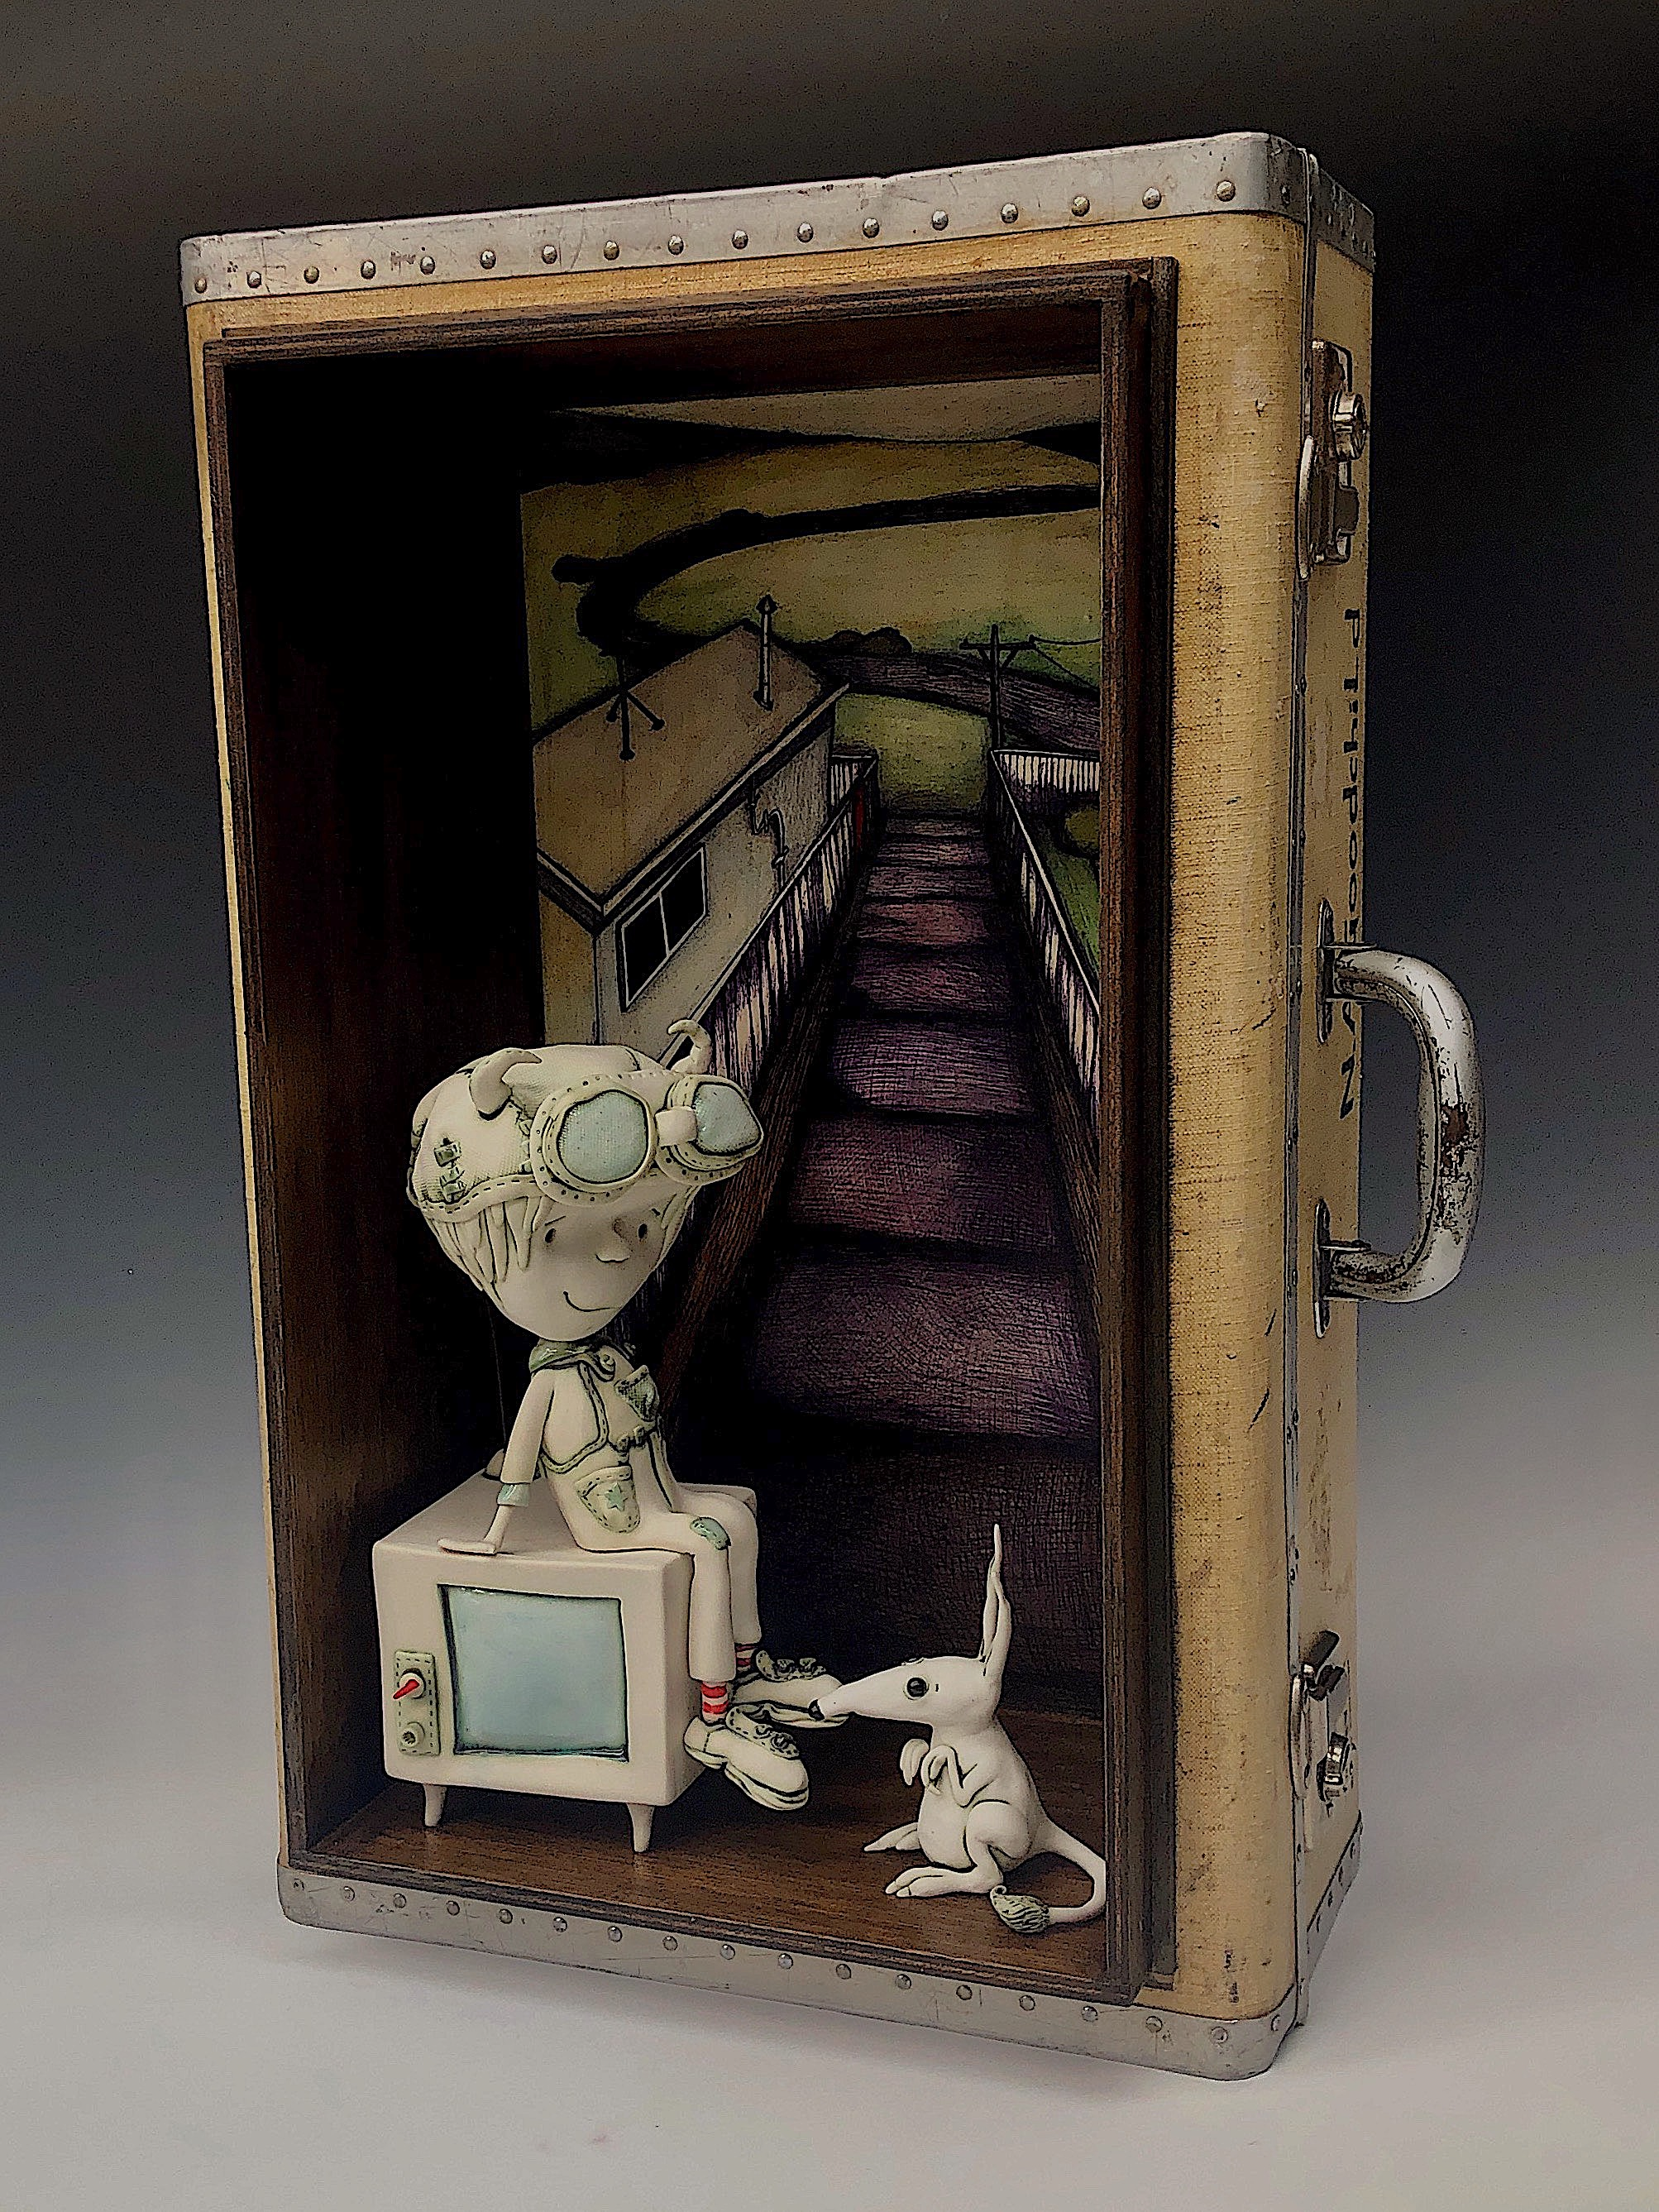 Title : 'The road no one seems to take anymore.' w34cm x 67cm x 27cm Material : found suitcase, porcelain, illustration Wall mounted